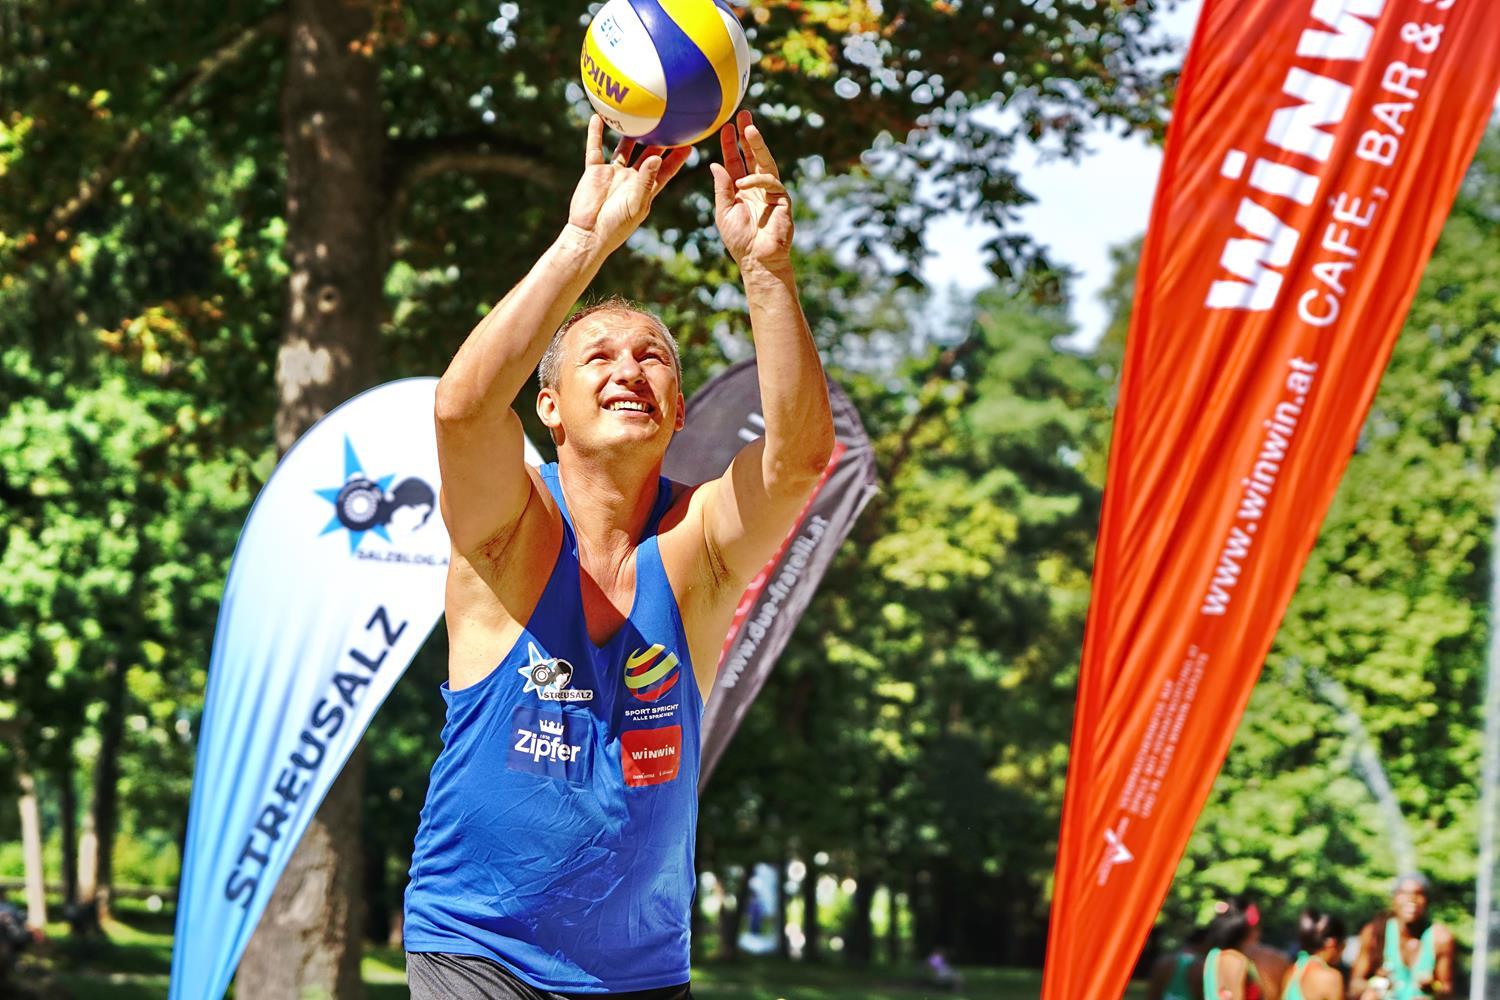 20160904_FMT_SSAS_ Vollyball_KJ (73) (Copy)